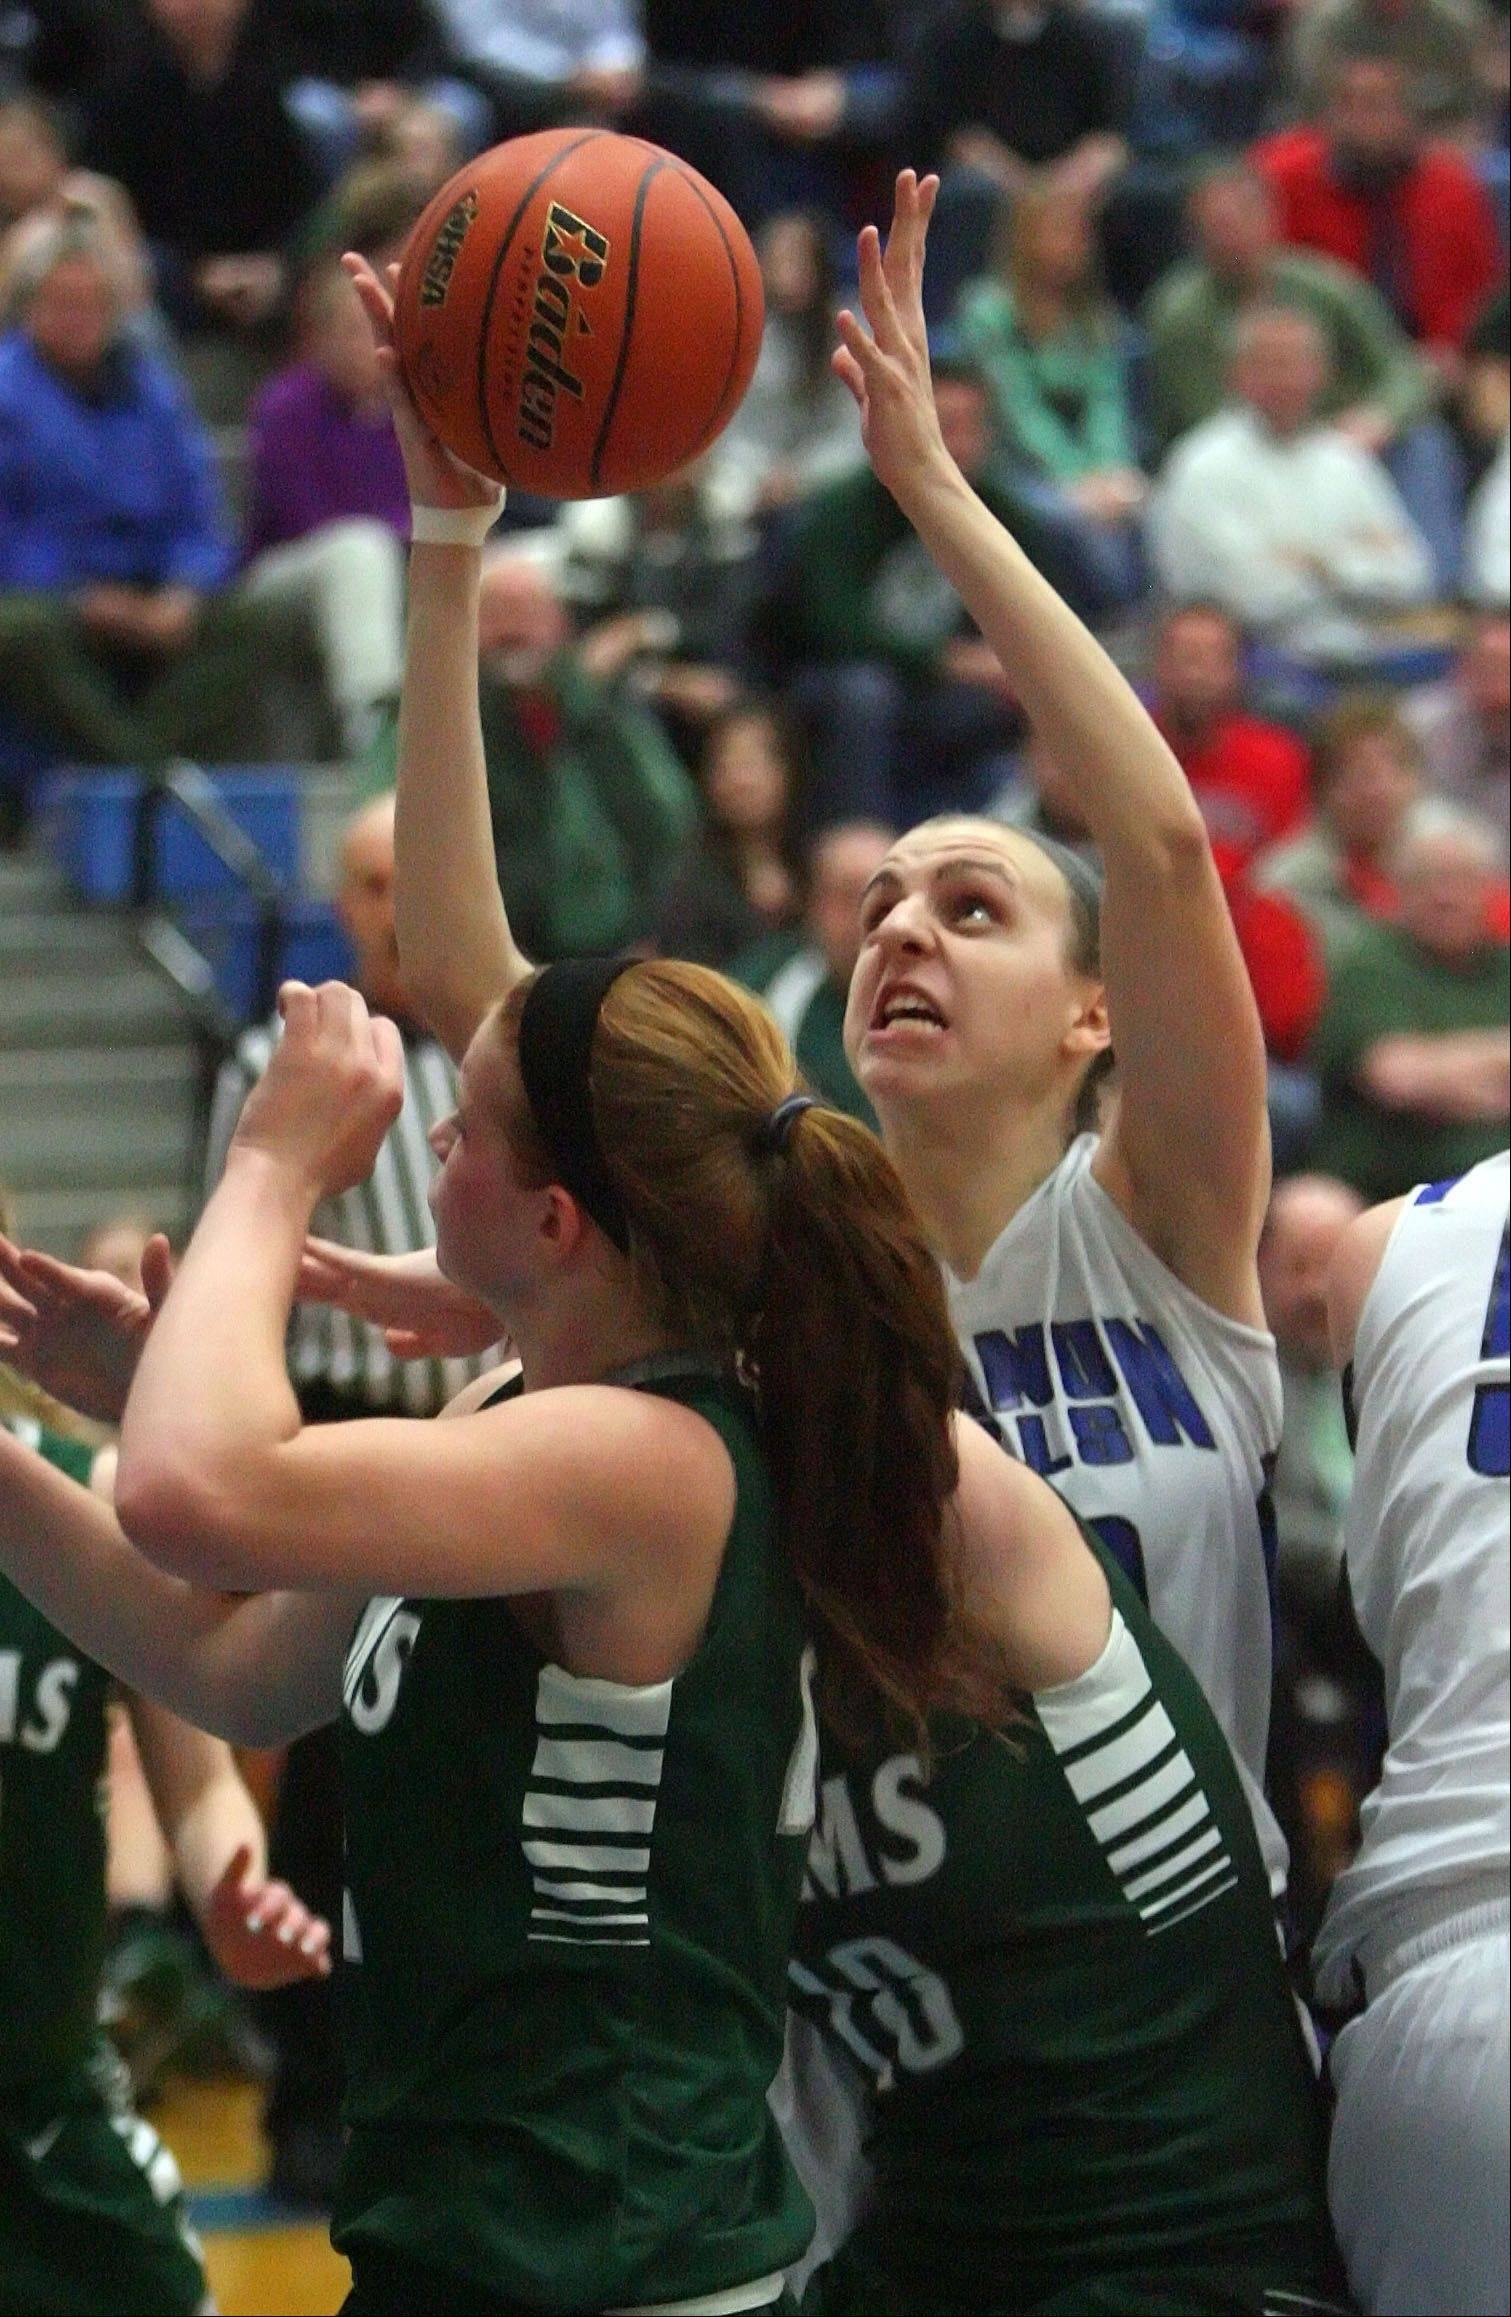 Vernon Hills' Alina Lehocky drives to the hoop.